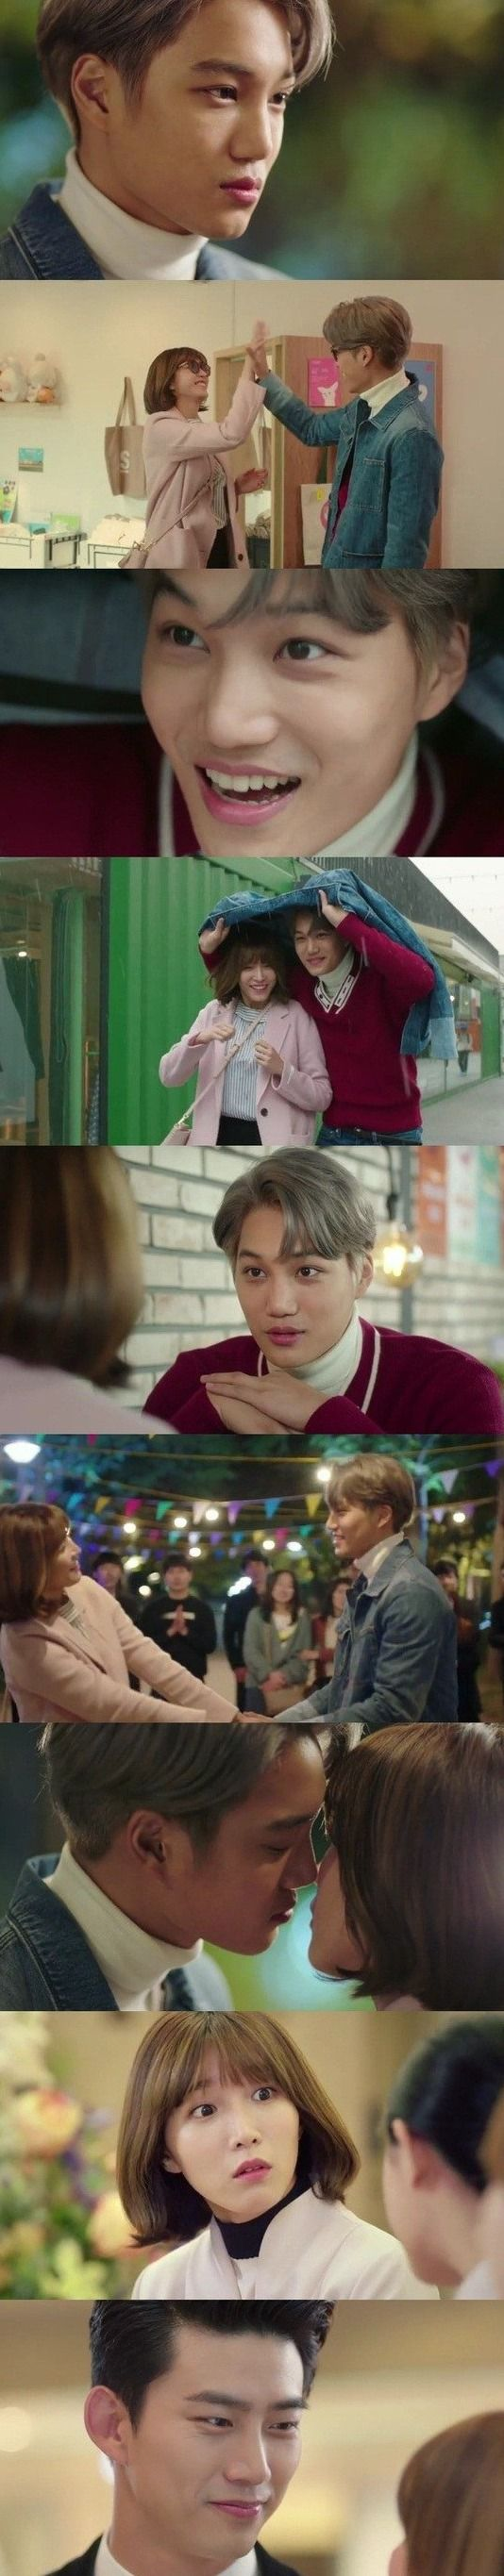 [Spoiler] Added episode 5 captures for the #kdrama 'Seven First Kisses'